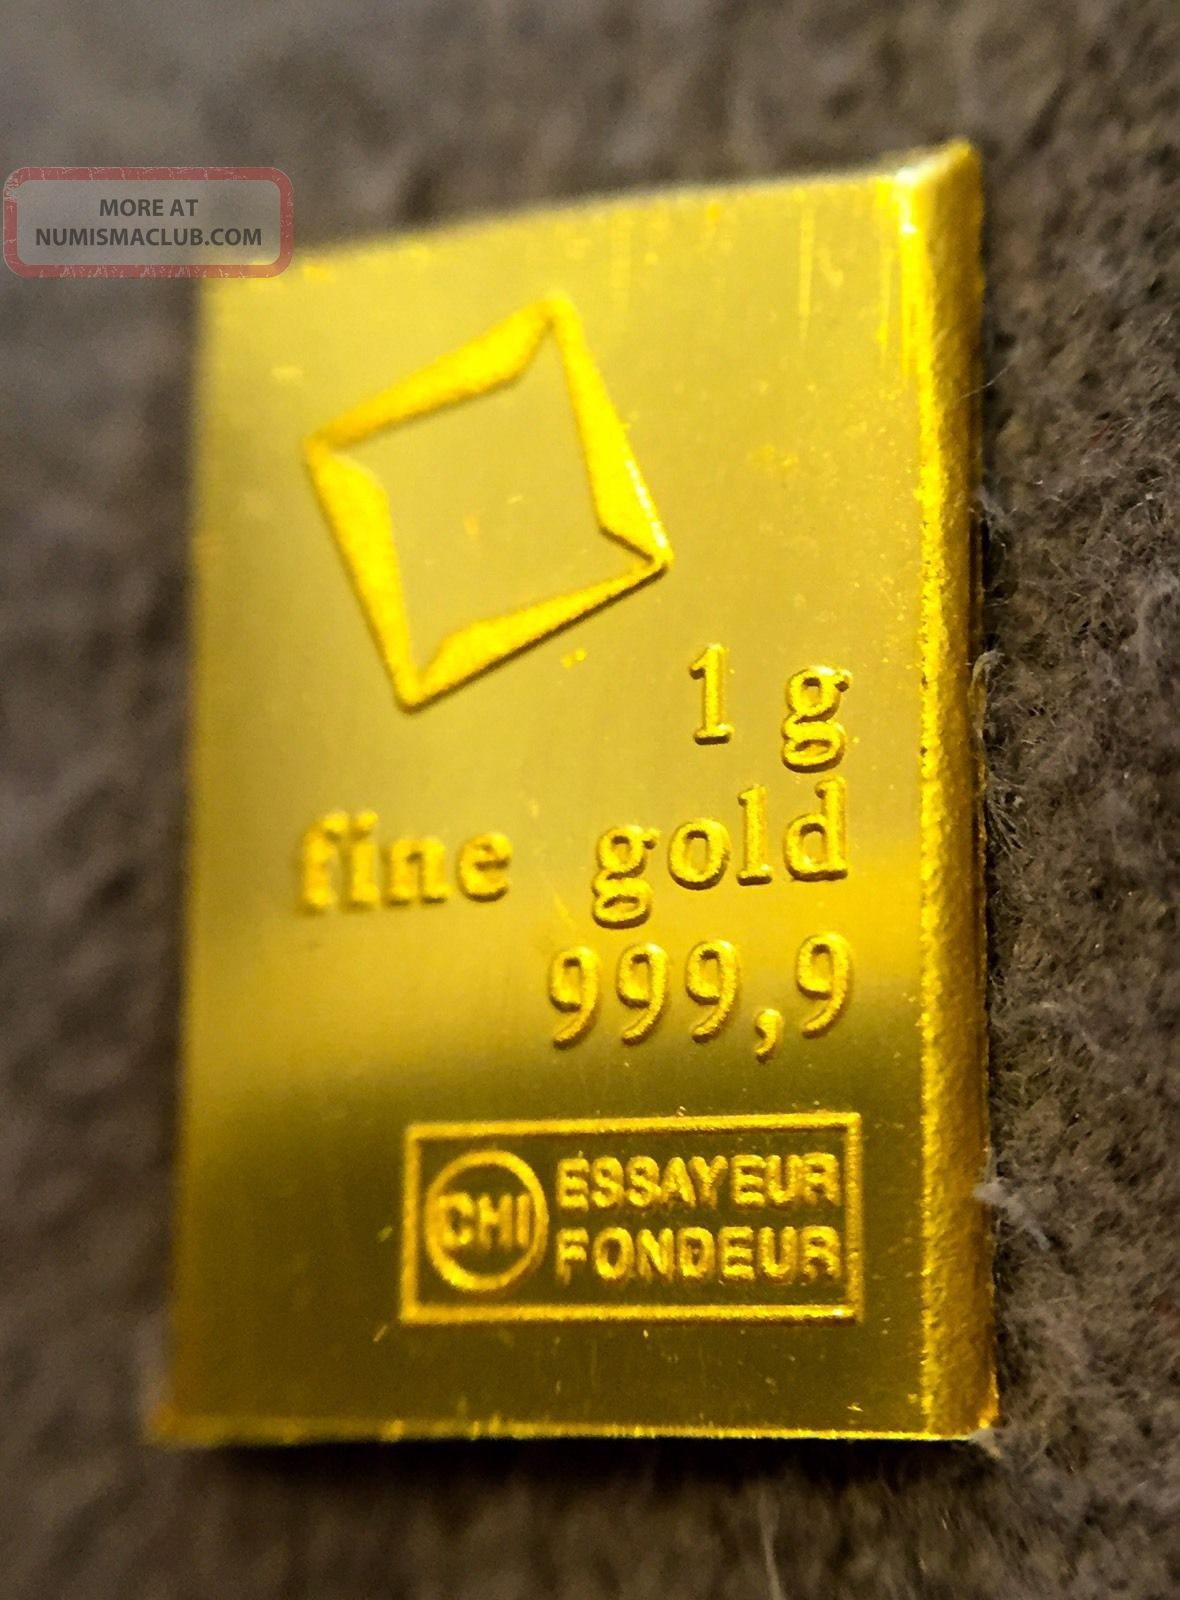 essayeur fondeur gold Buying credit suisse gold bars online credit suisse is a publicly traded bank located in zurich, switzerland this company is one of the oldest in the world of precious metals, having been in existence for over 150 years.